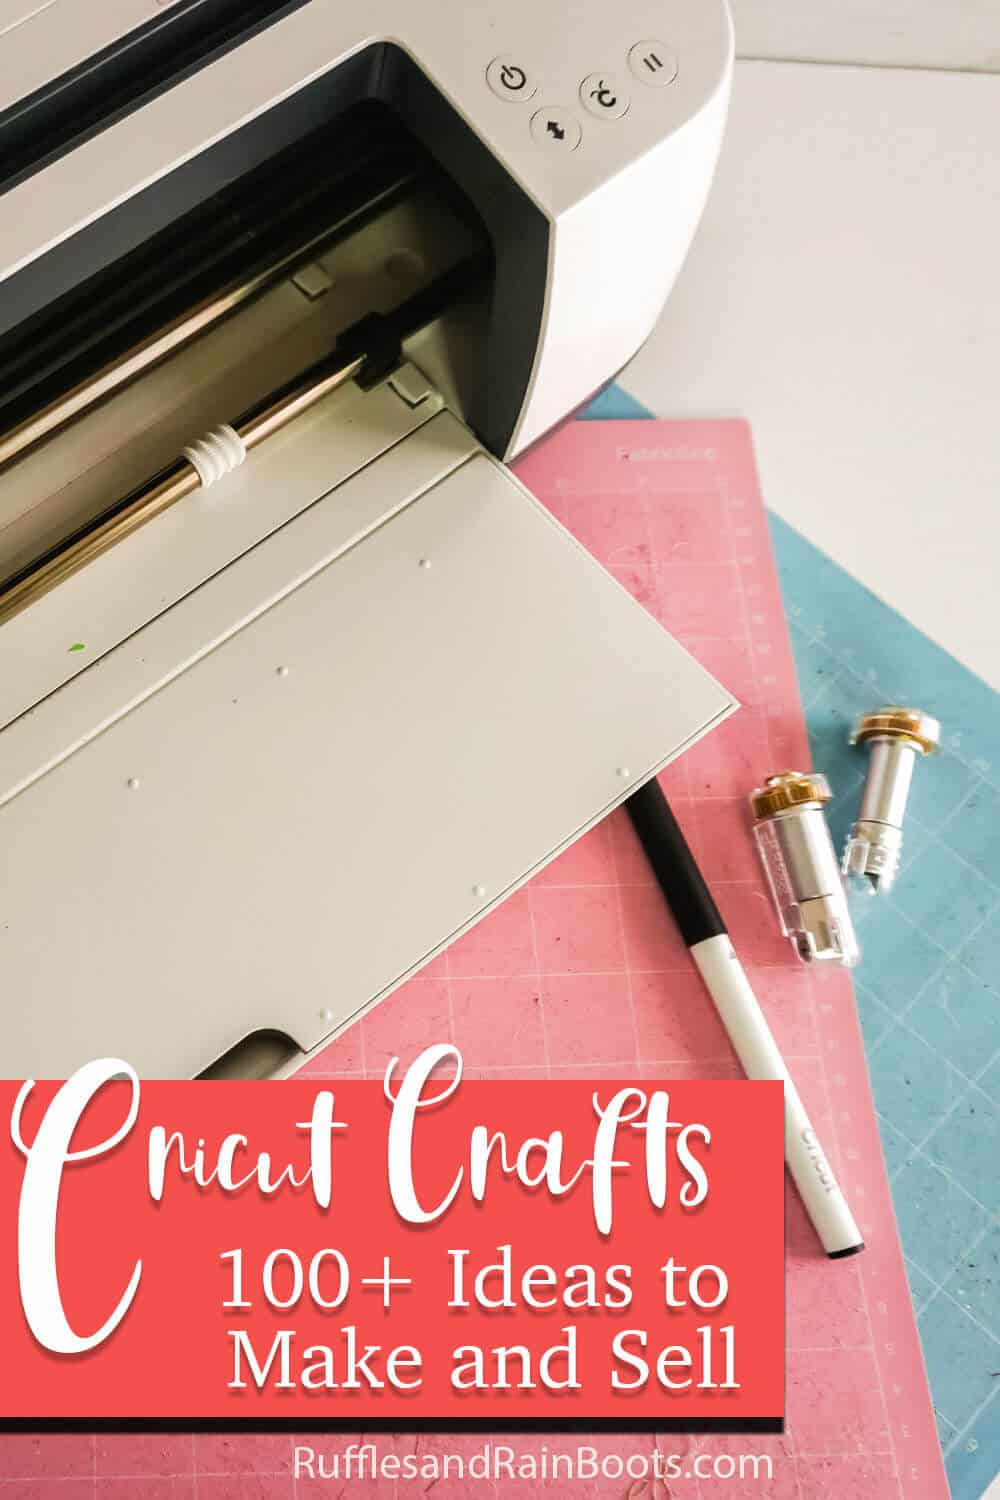 overhead view of cricut tools to cut craft fair with text which reads cricut crafts 100+ideas to make and sell